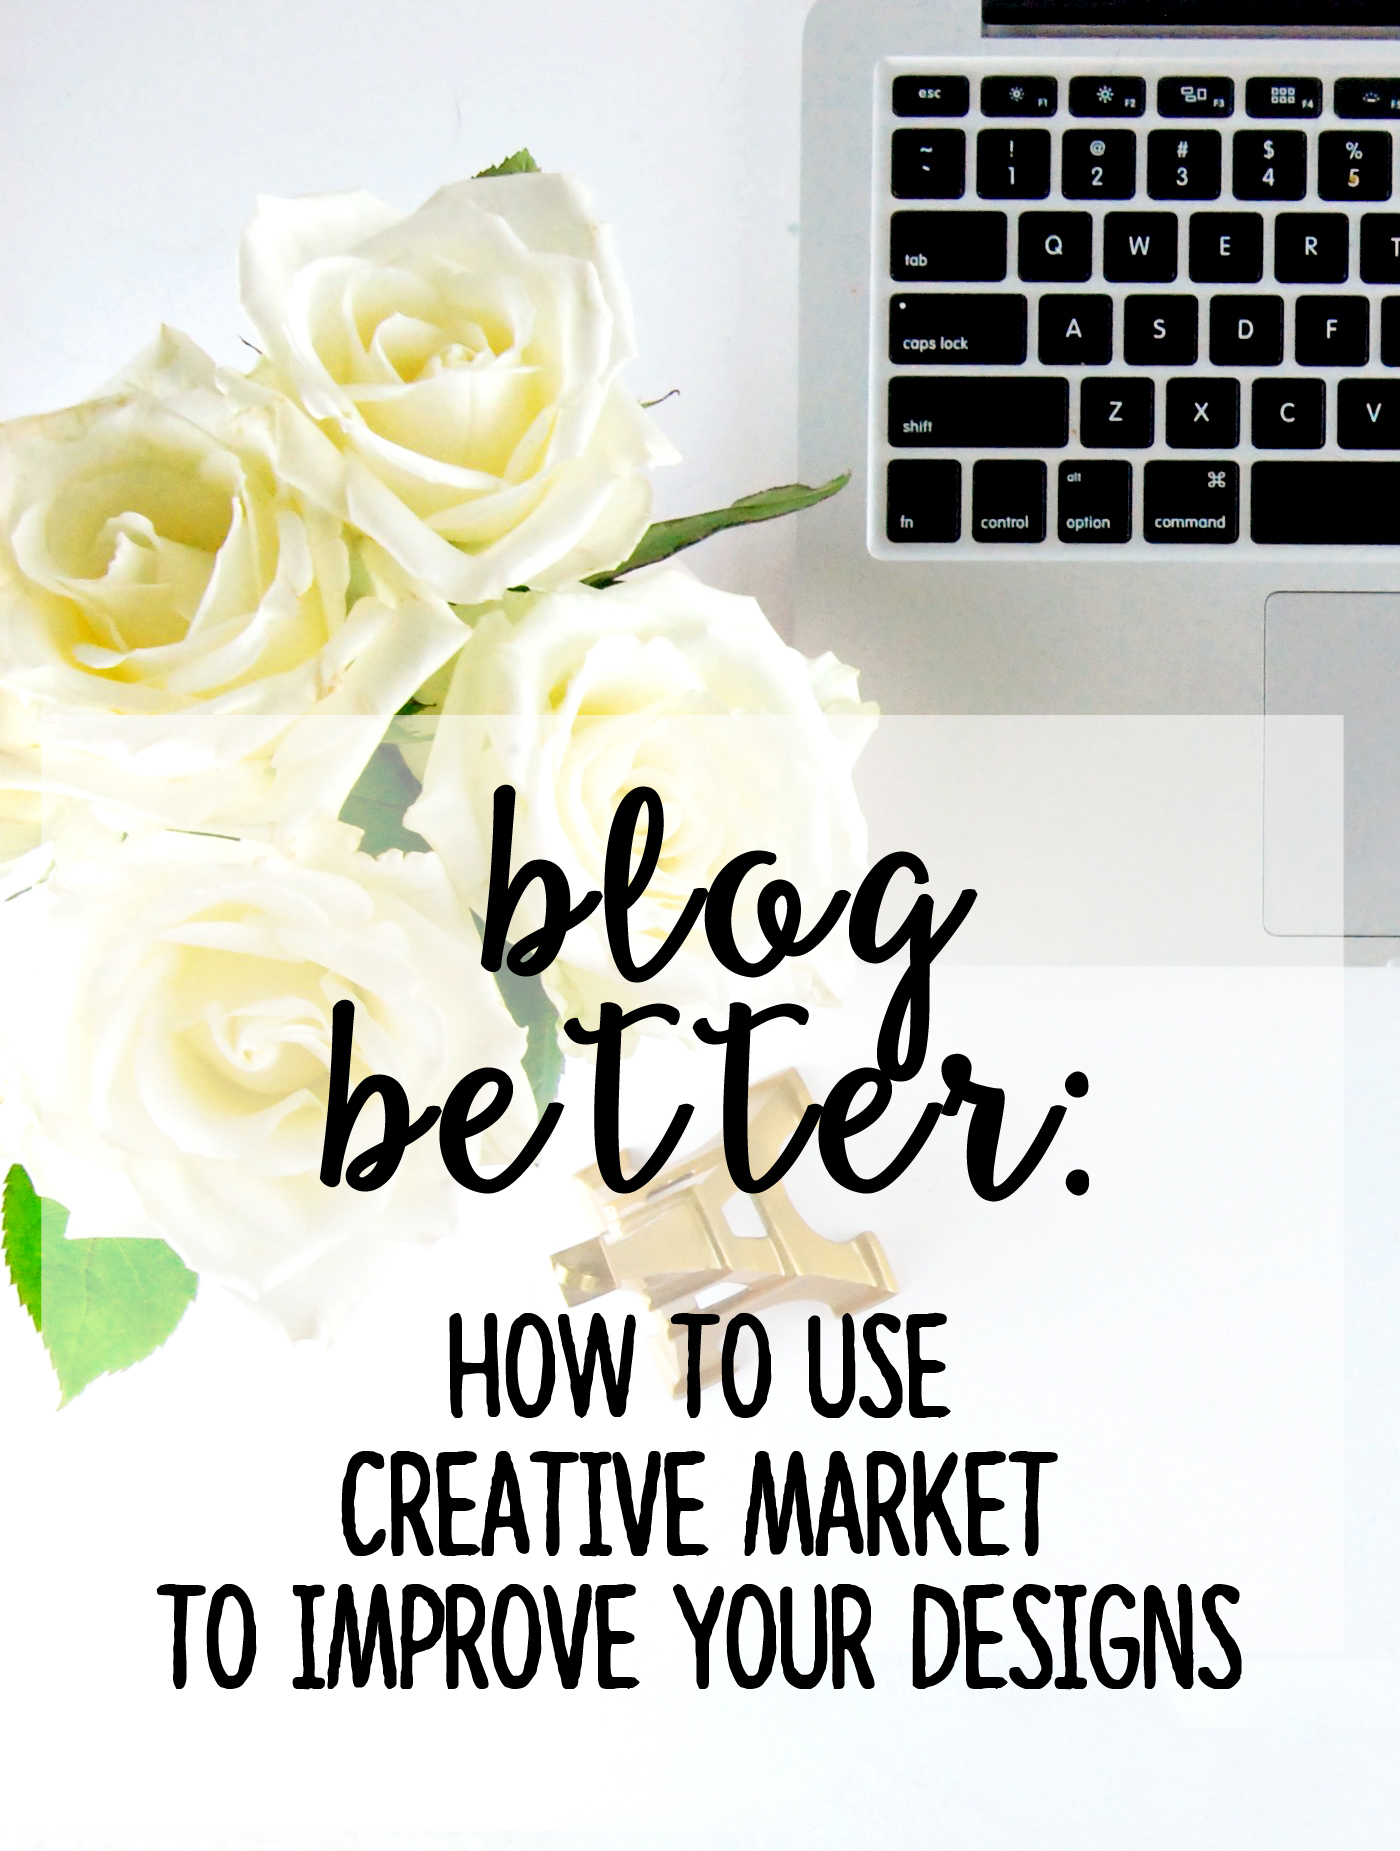 Blog Better: How to use Creative Market to improve your designs | Drink the Day